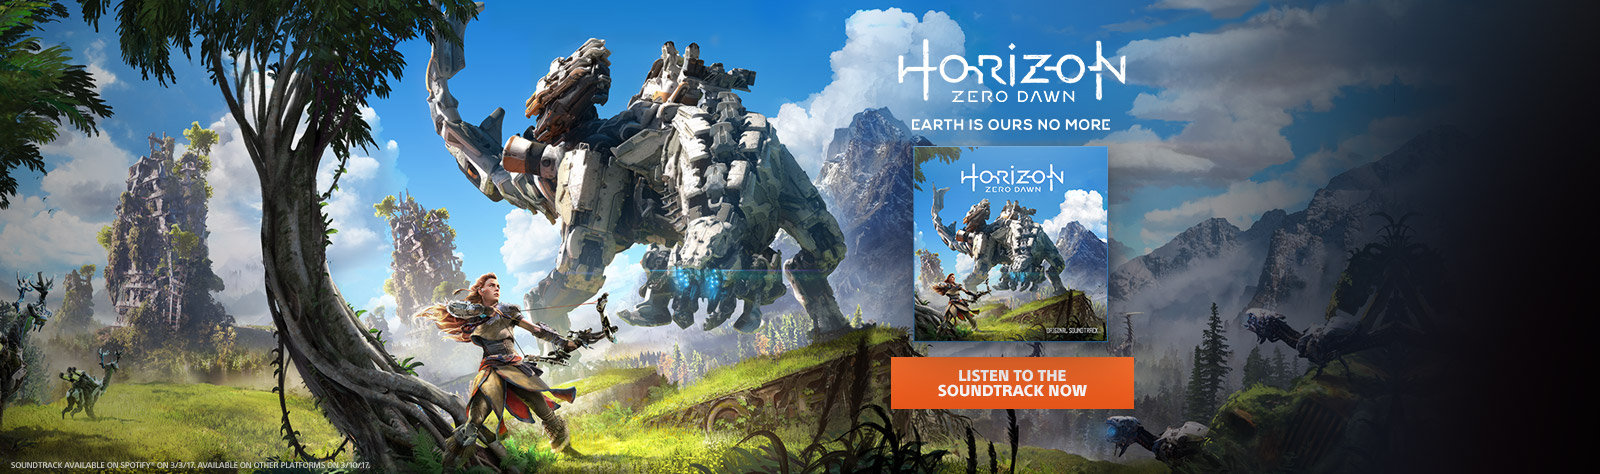 playstation-music-horizon-zero-dawn-spotify-banner-01-us-02mar17